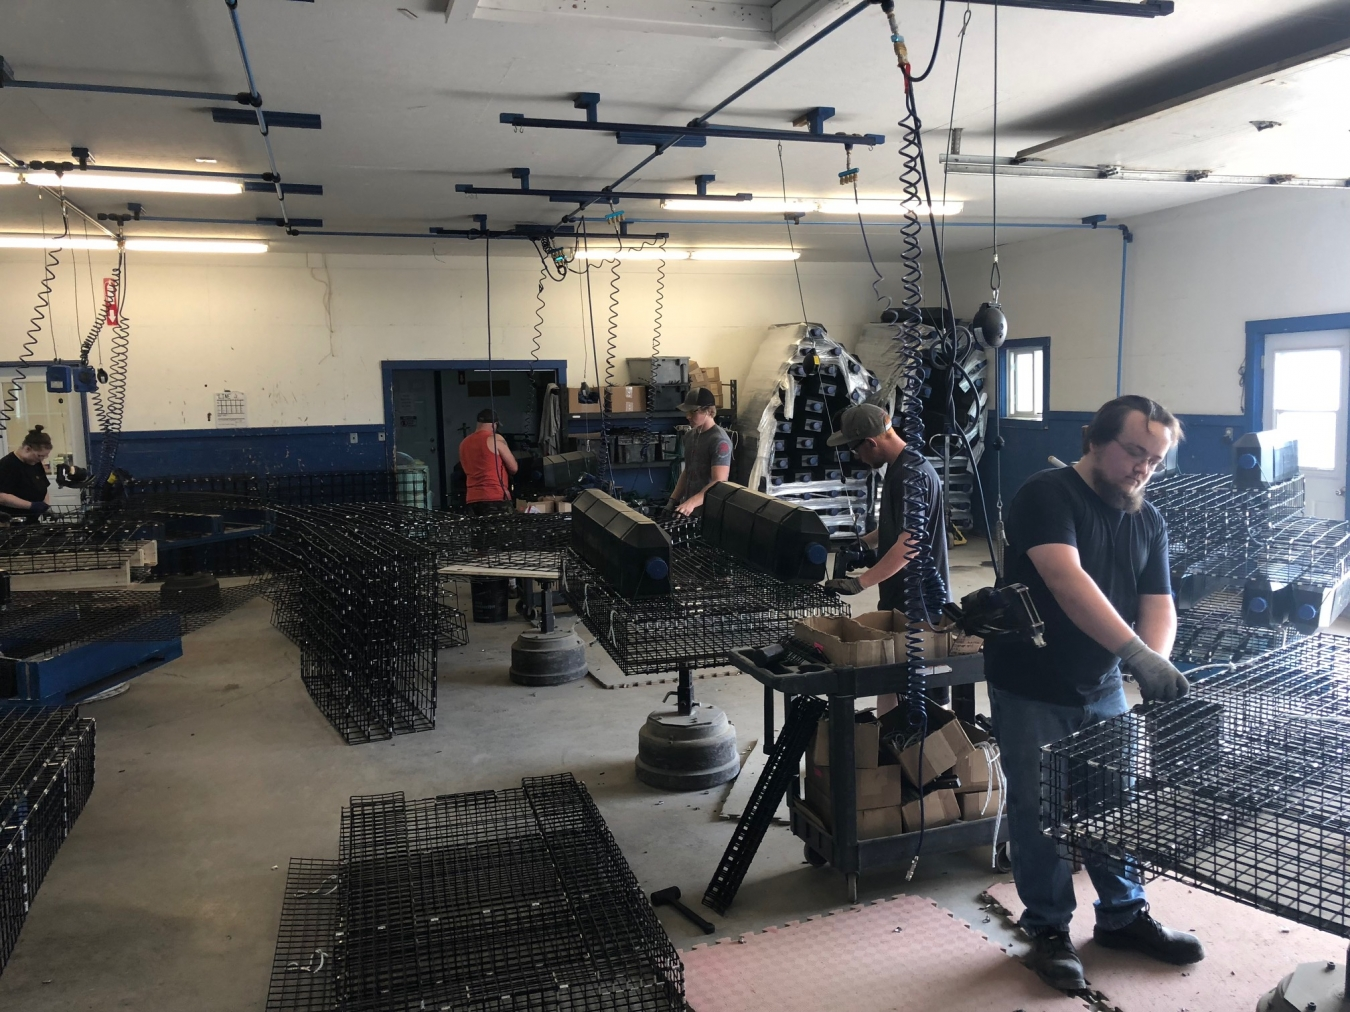 Workers build oyster cages at a gear manufacturer in Bouctouche, Canada. (Photo courtesy of Gage Swann)